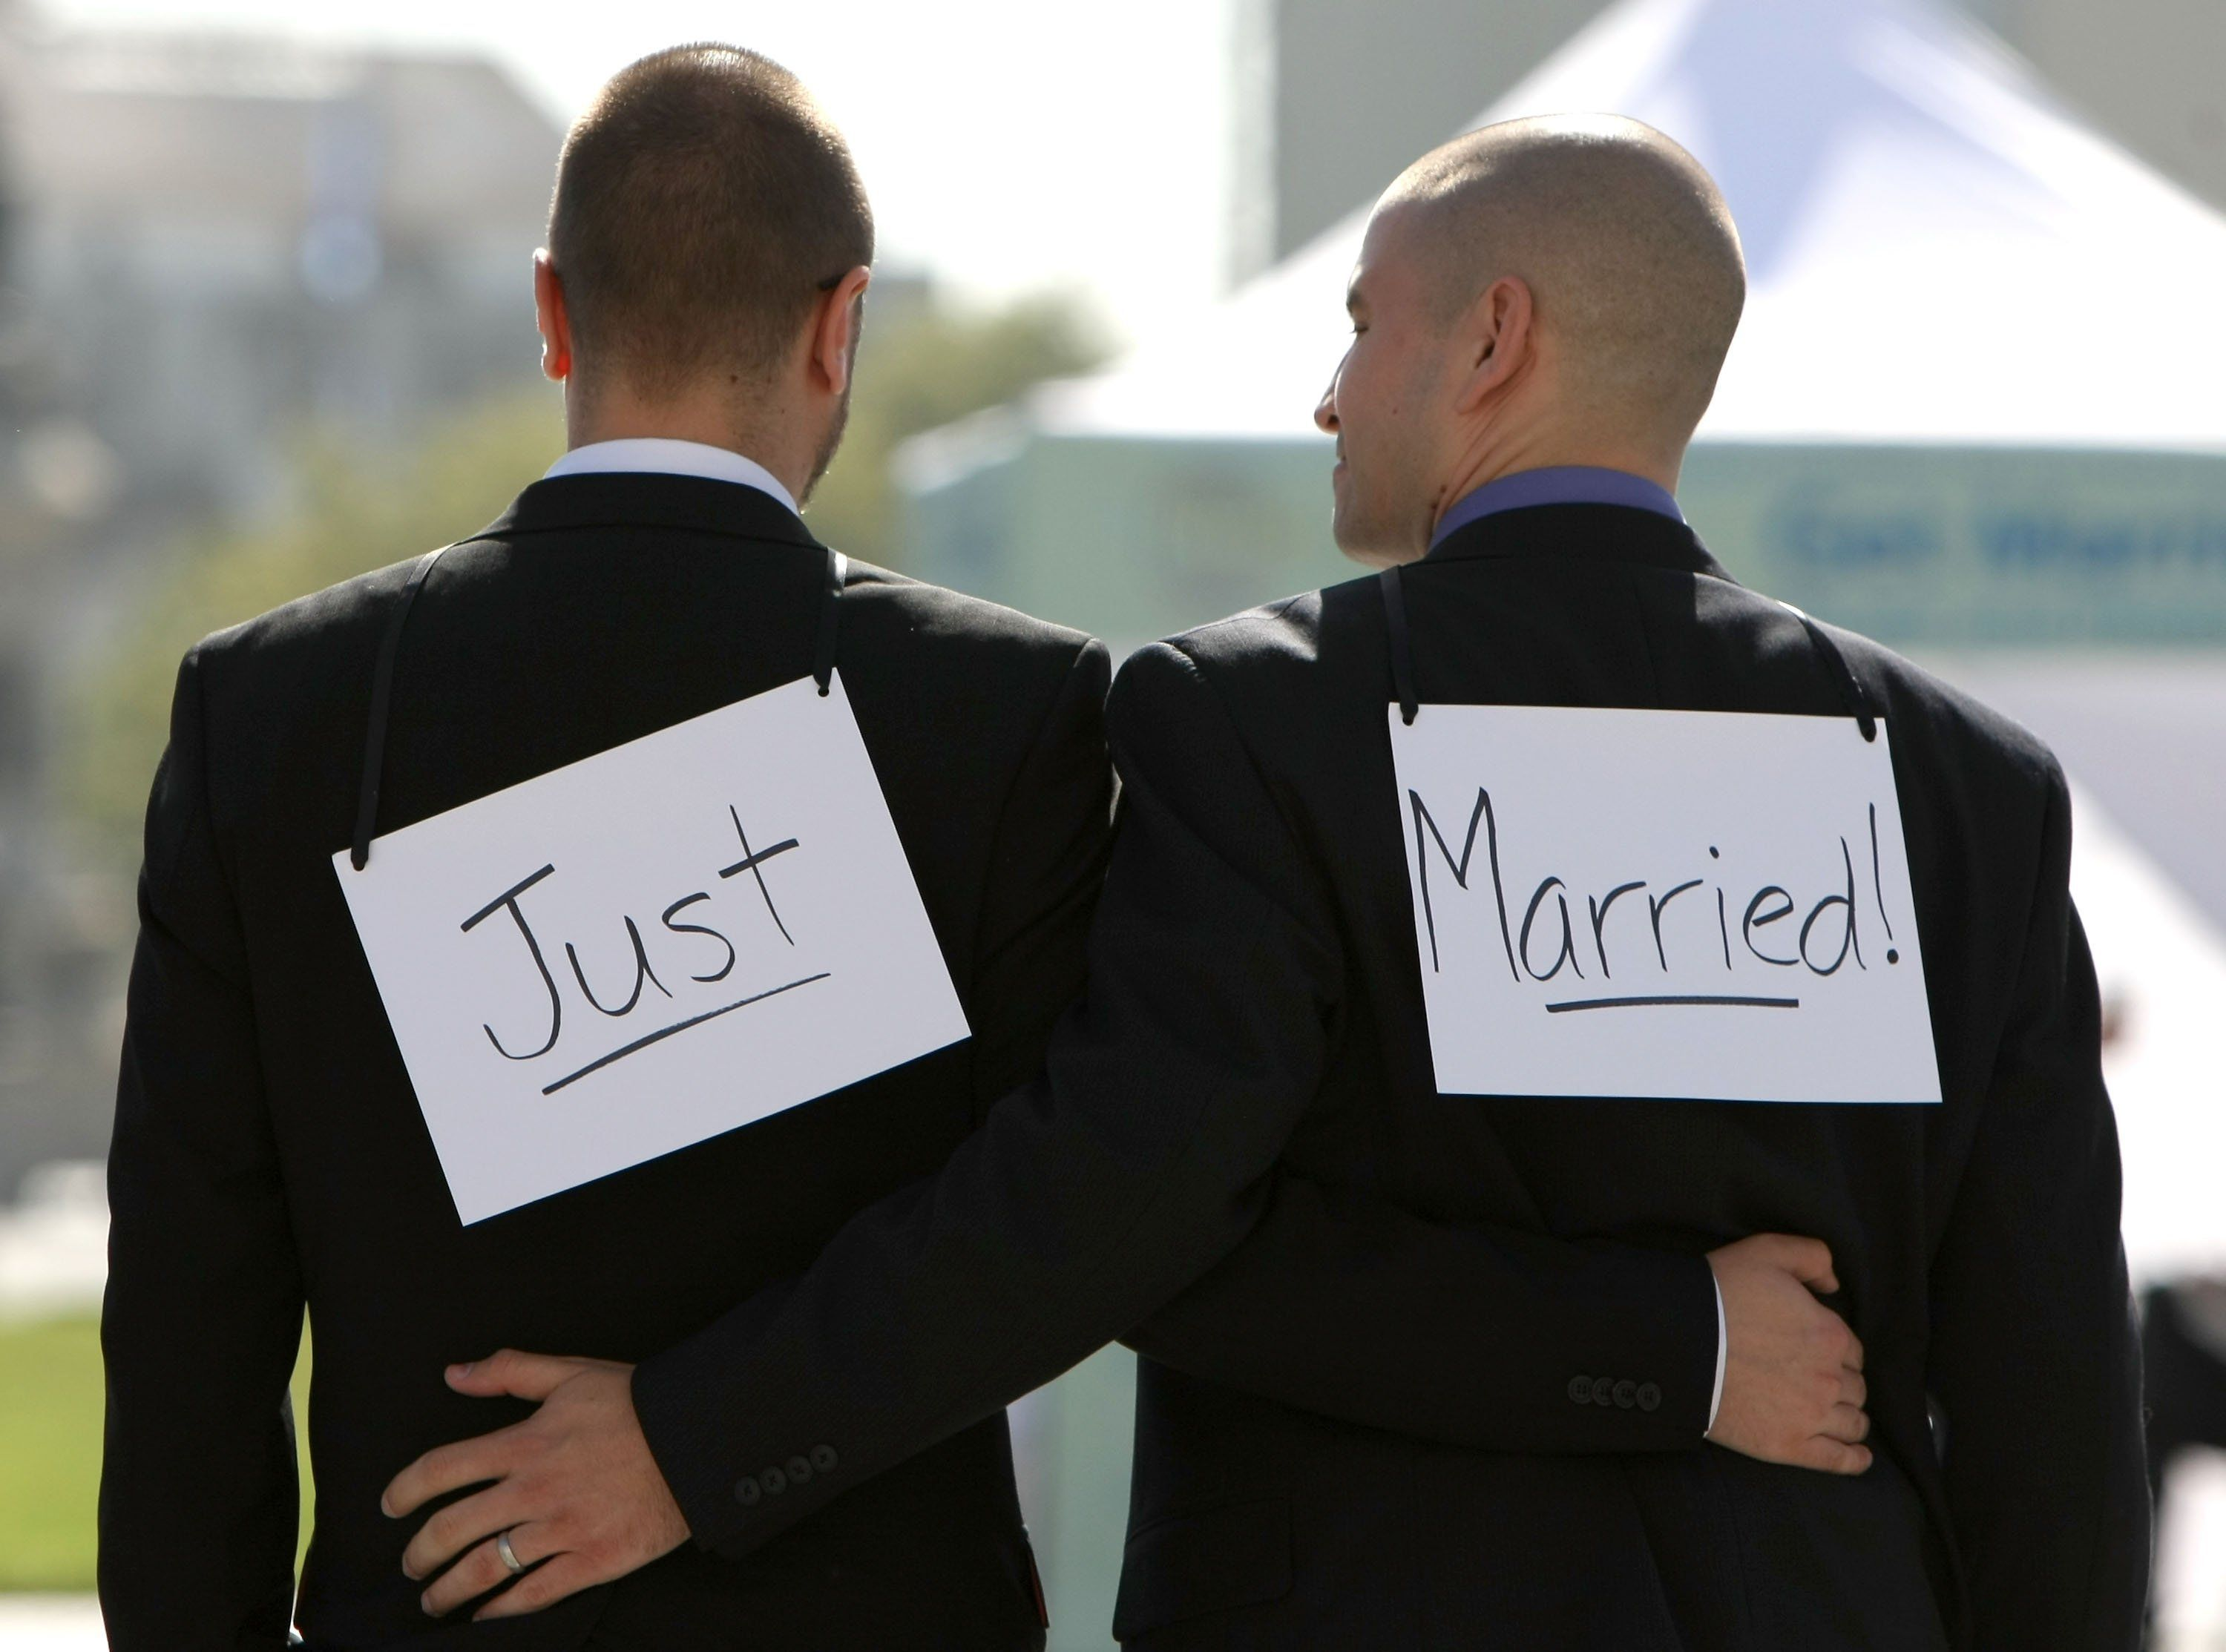 Gay and lesbian marriage rights